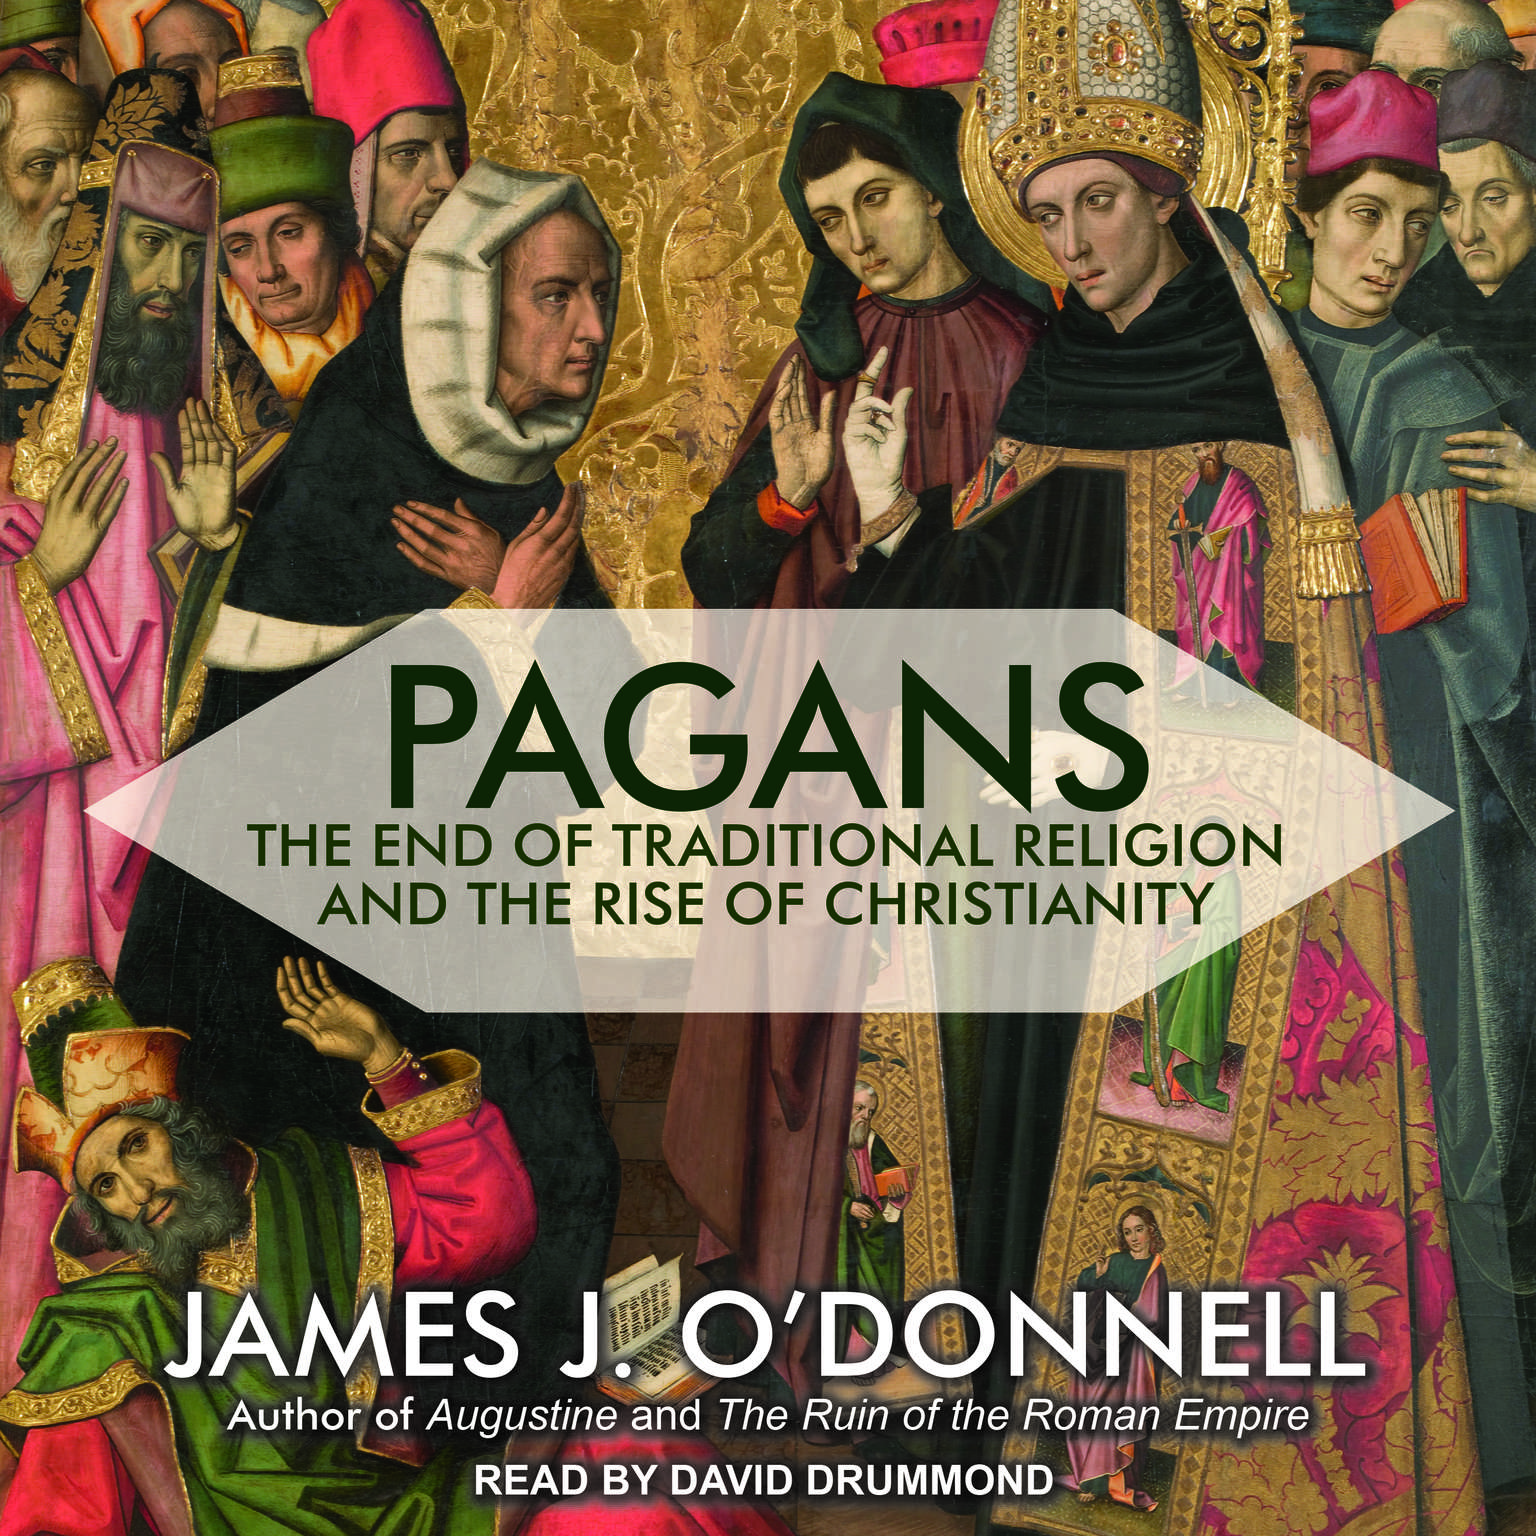 Pagans: The End of Traditional Religion and the Rise of Christianity Audiobook, by James J. O'Donnell